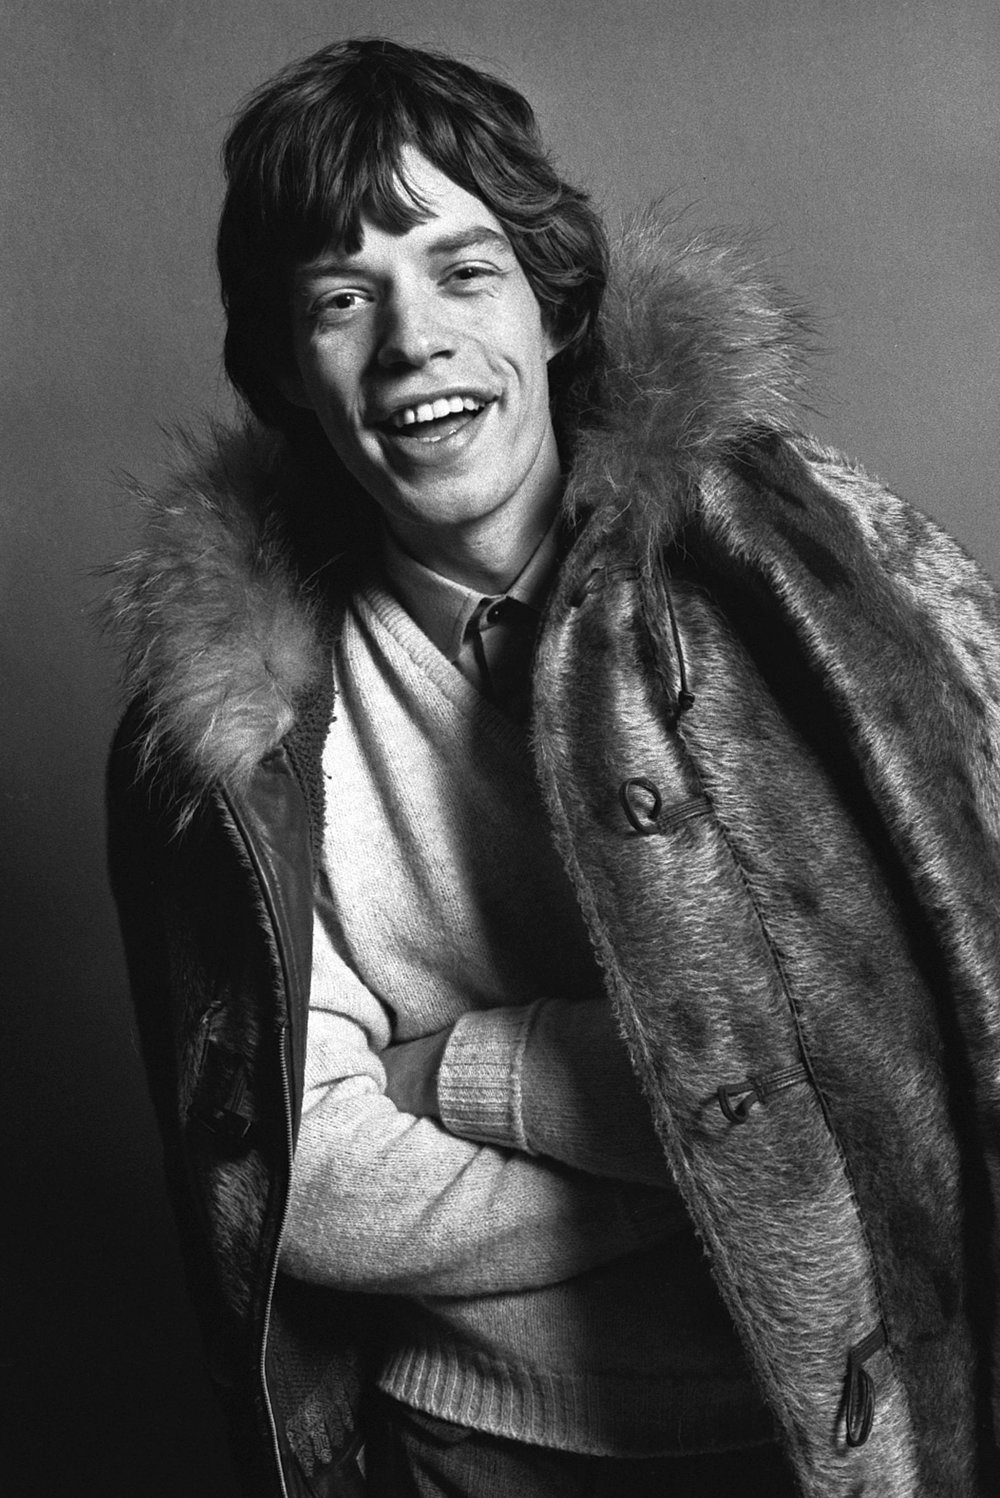 Mick Jagger Laughing wearing Fur Coat, c.1963